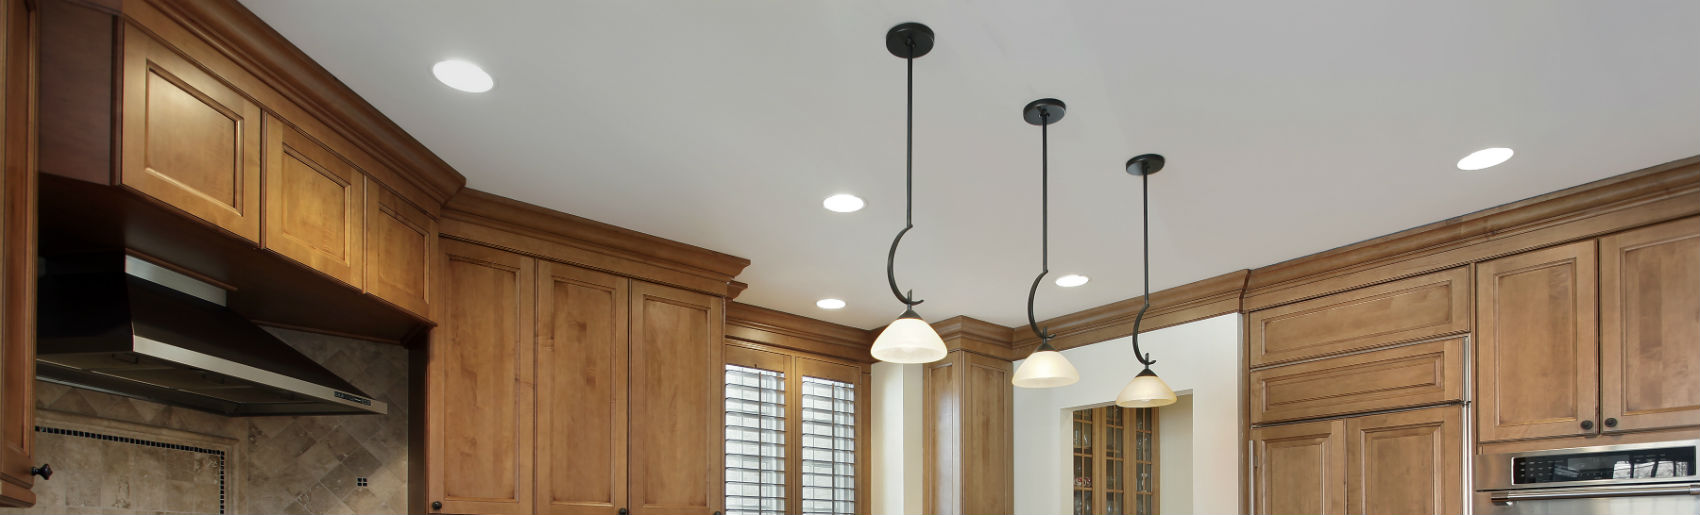 residential lighting in birmingham